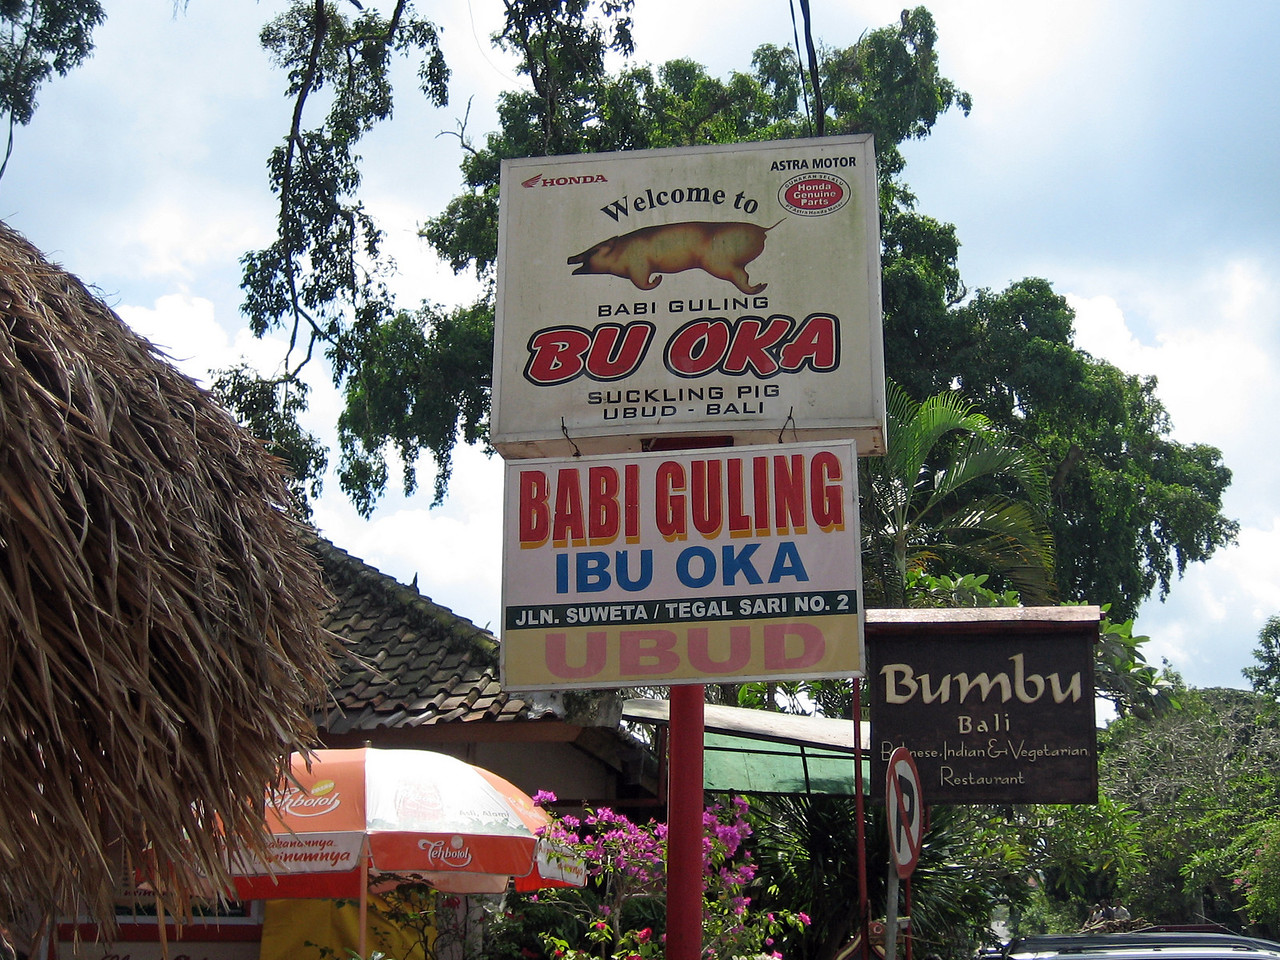 The best Babi Guling in Ubud.